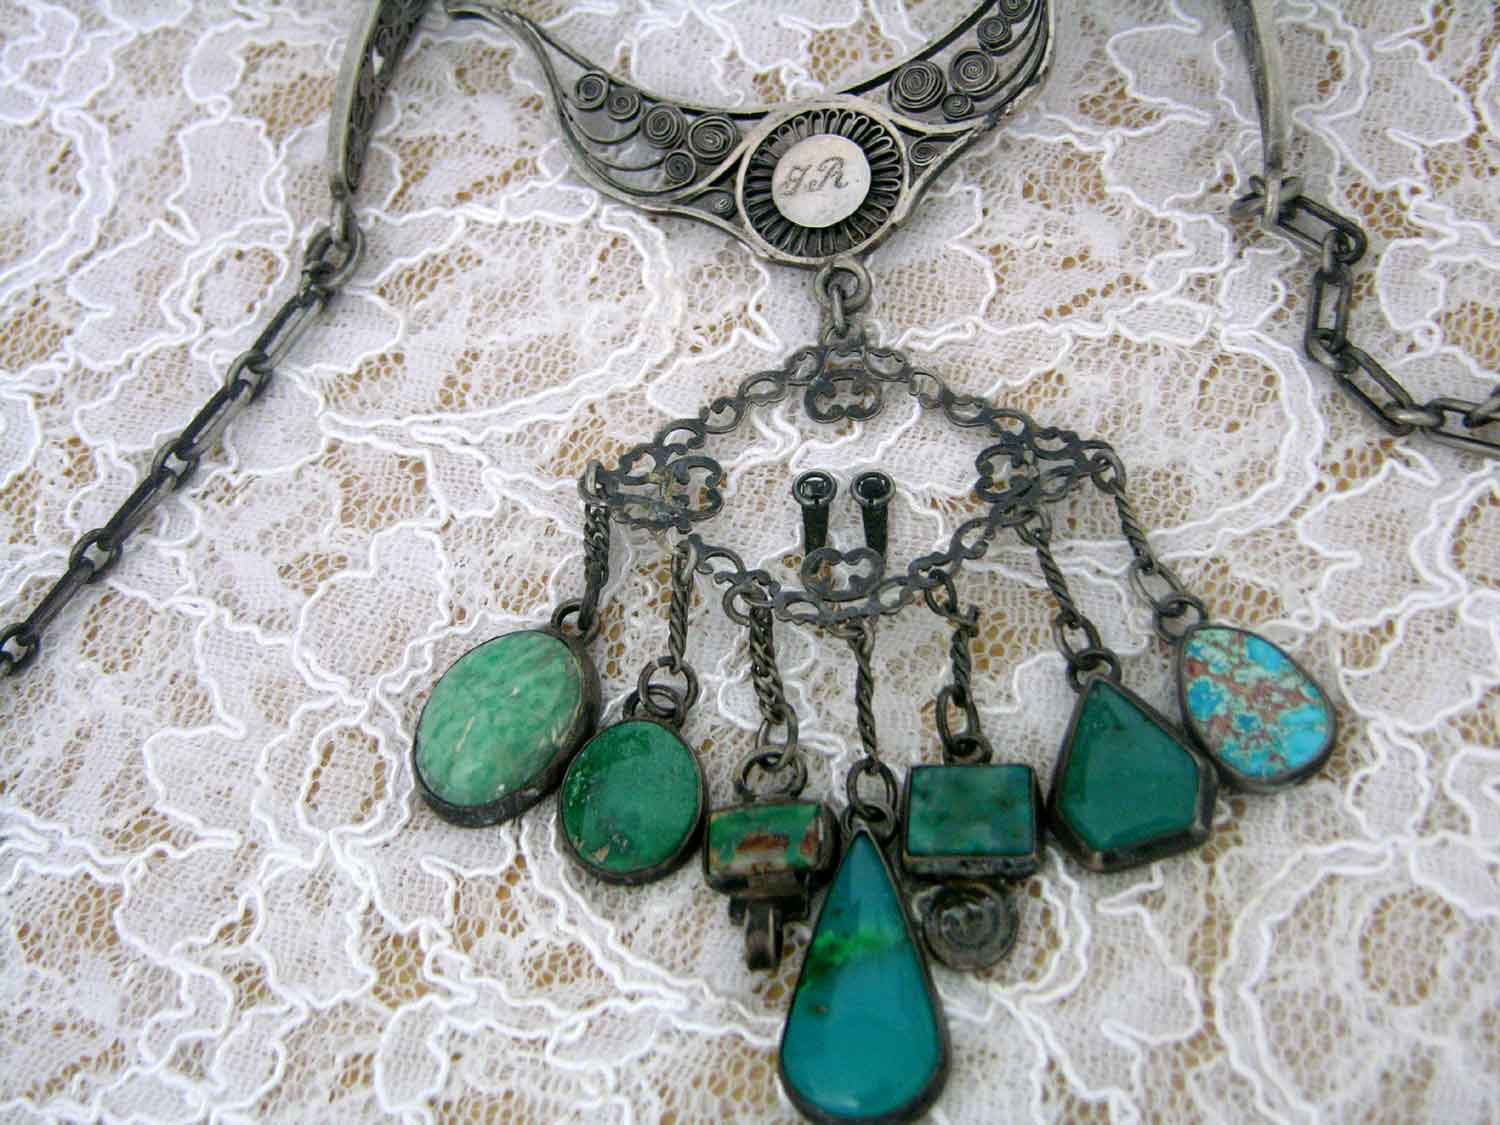 SILVER_NECKLACE_FLAT_TURQUOISE_FRONT_CLOSE_UPj_BEAD_FORUM.jpg (132.3 KB)